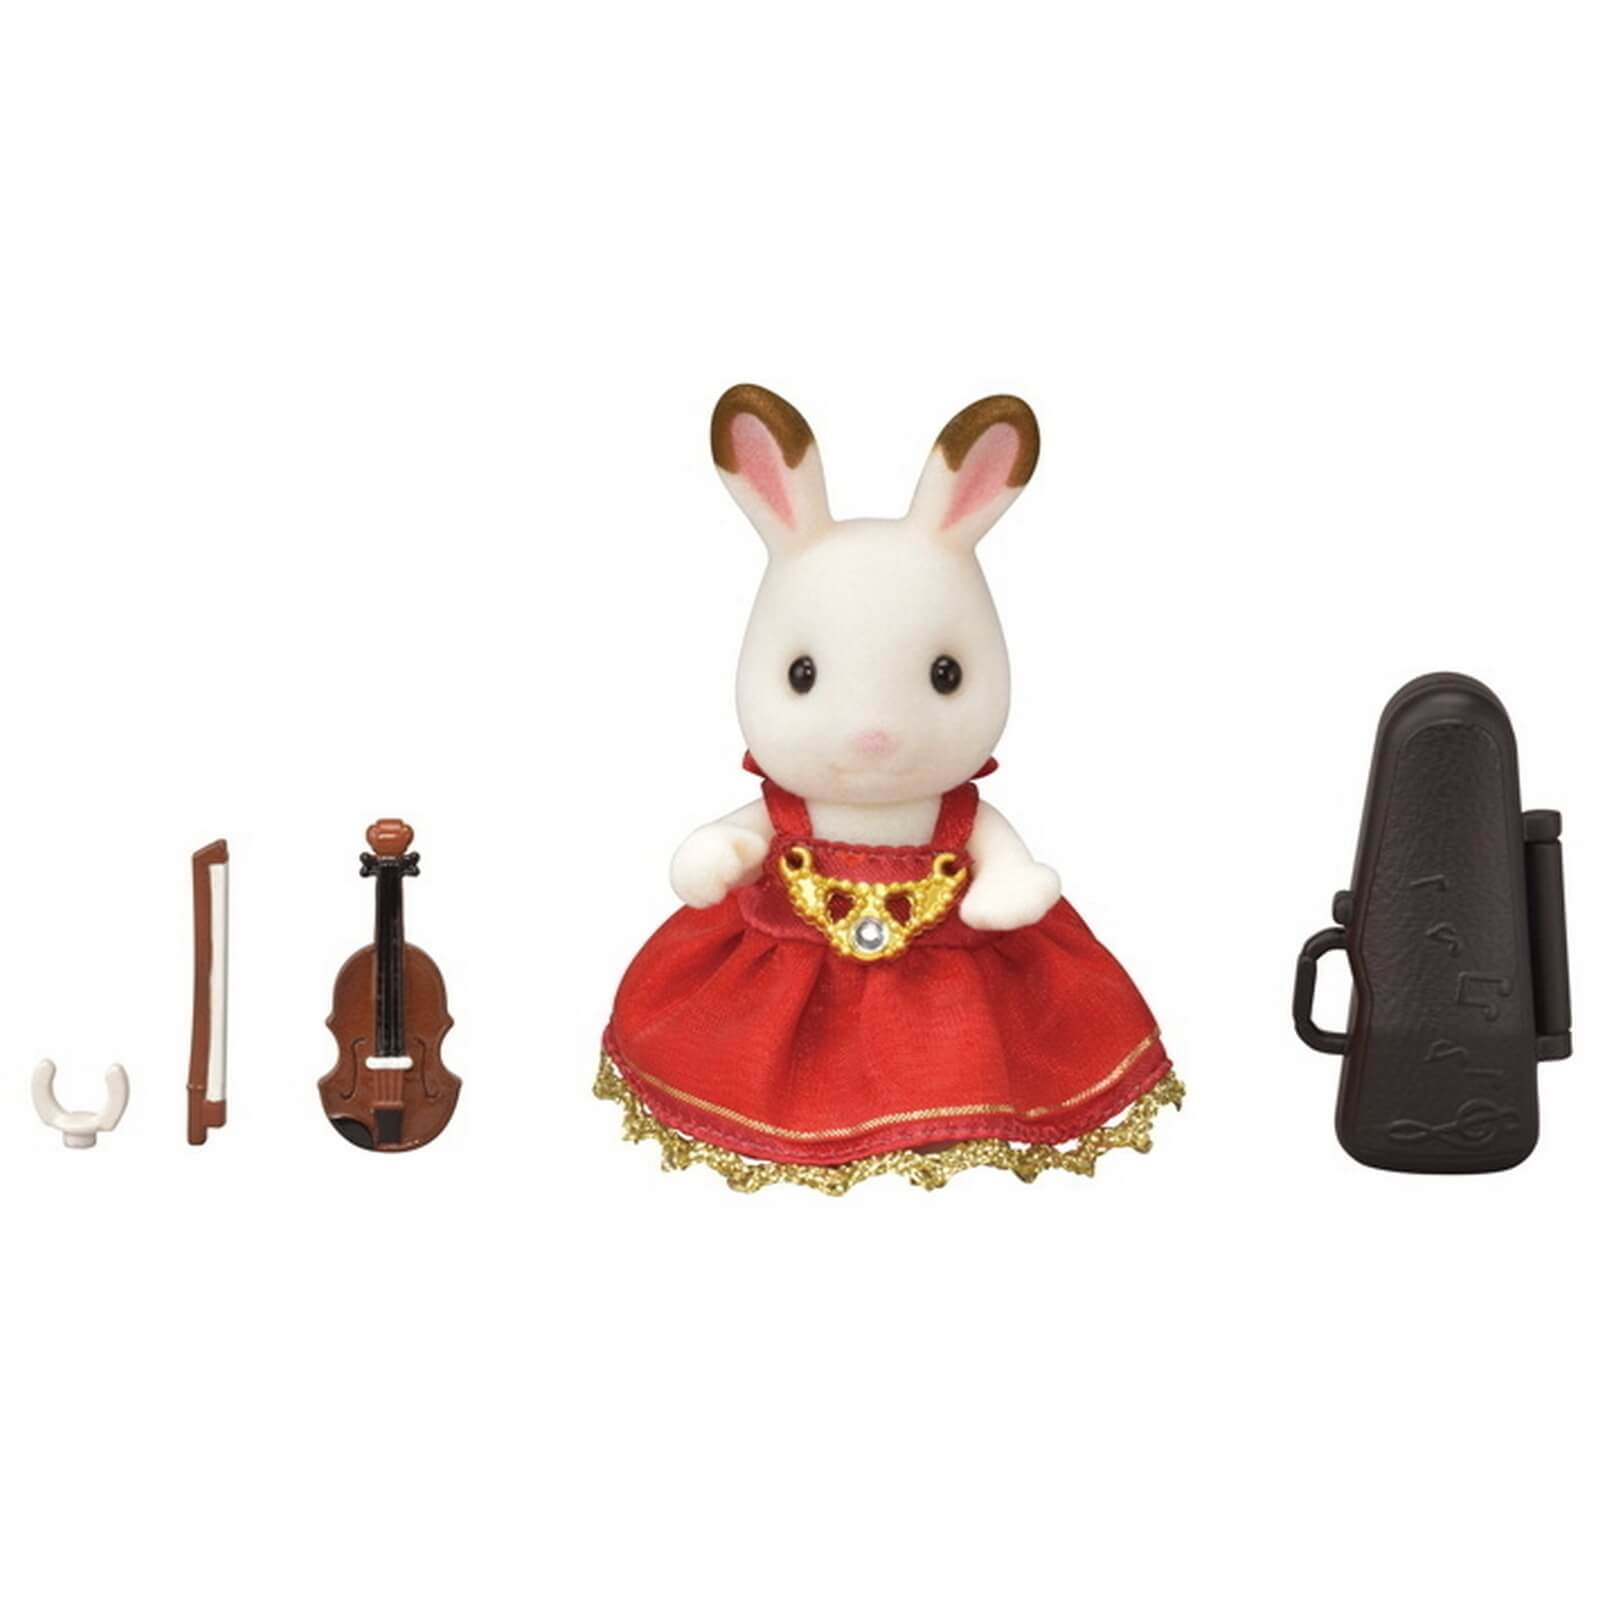 CALICO CRITTERS #CC3023 Violin Concert Set - New Factory Sealed